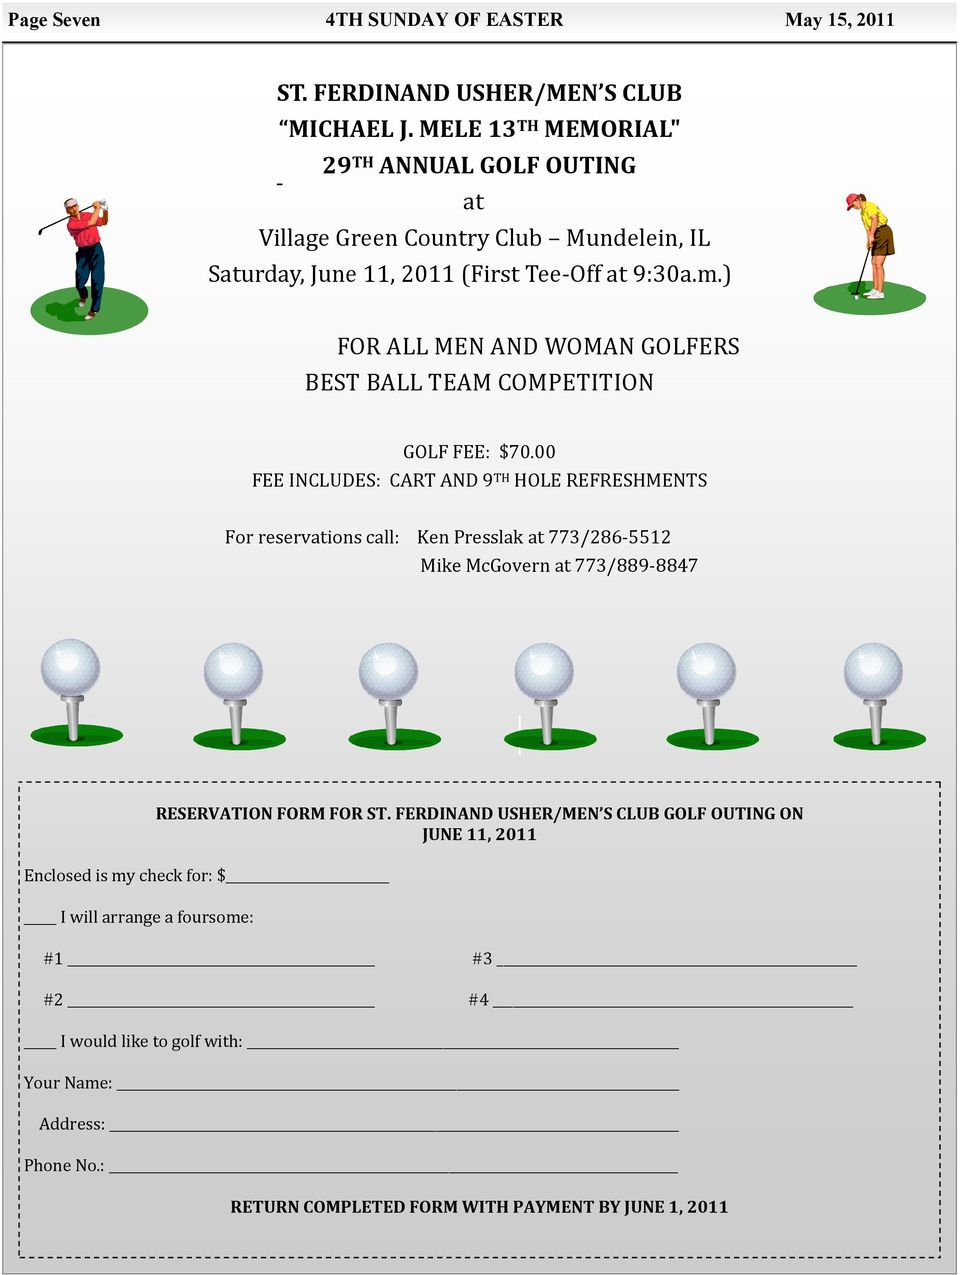 ) FOR ALL MEN AND WOMAN GOLFERS BEST BALL TEAM COMPETITION GOLF FEE: $70.